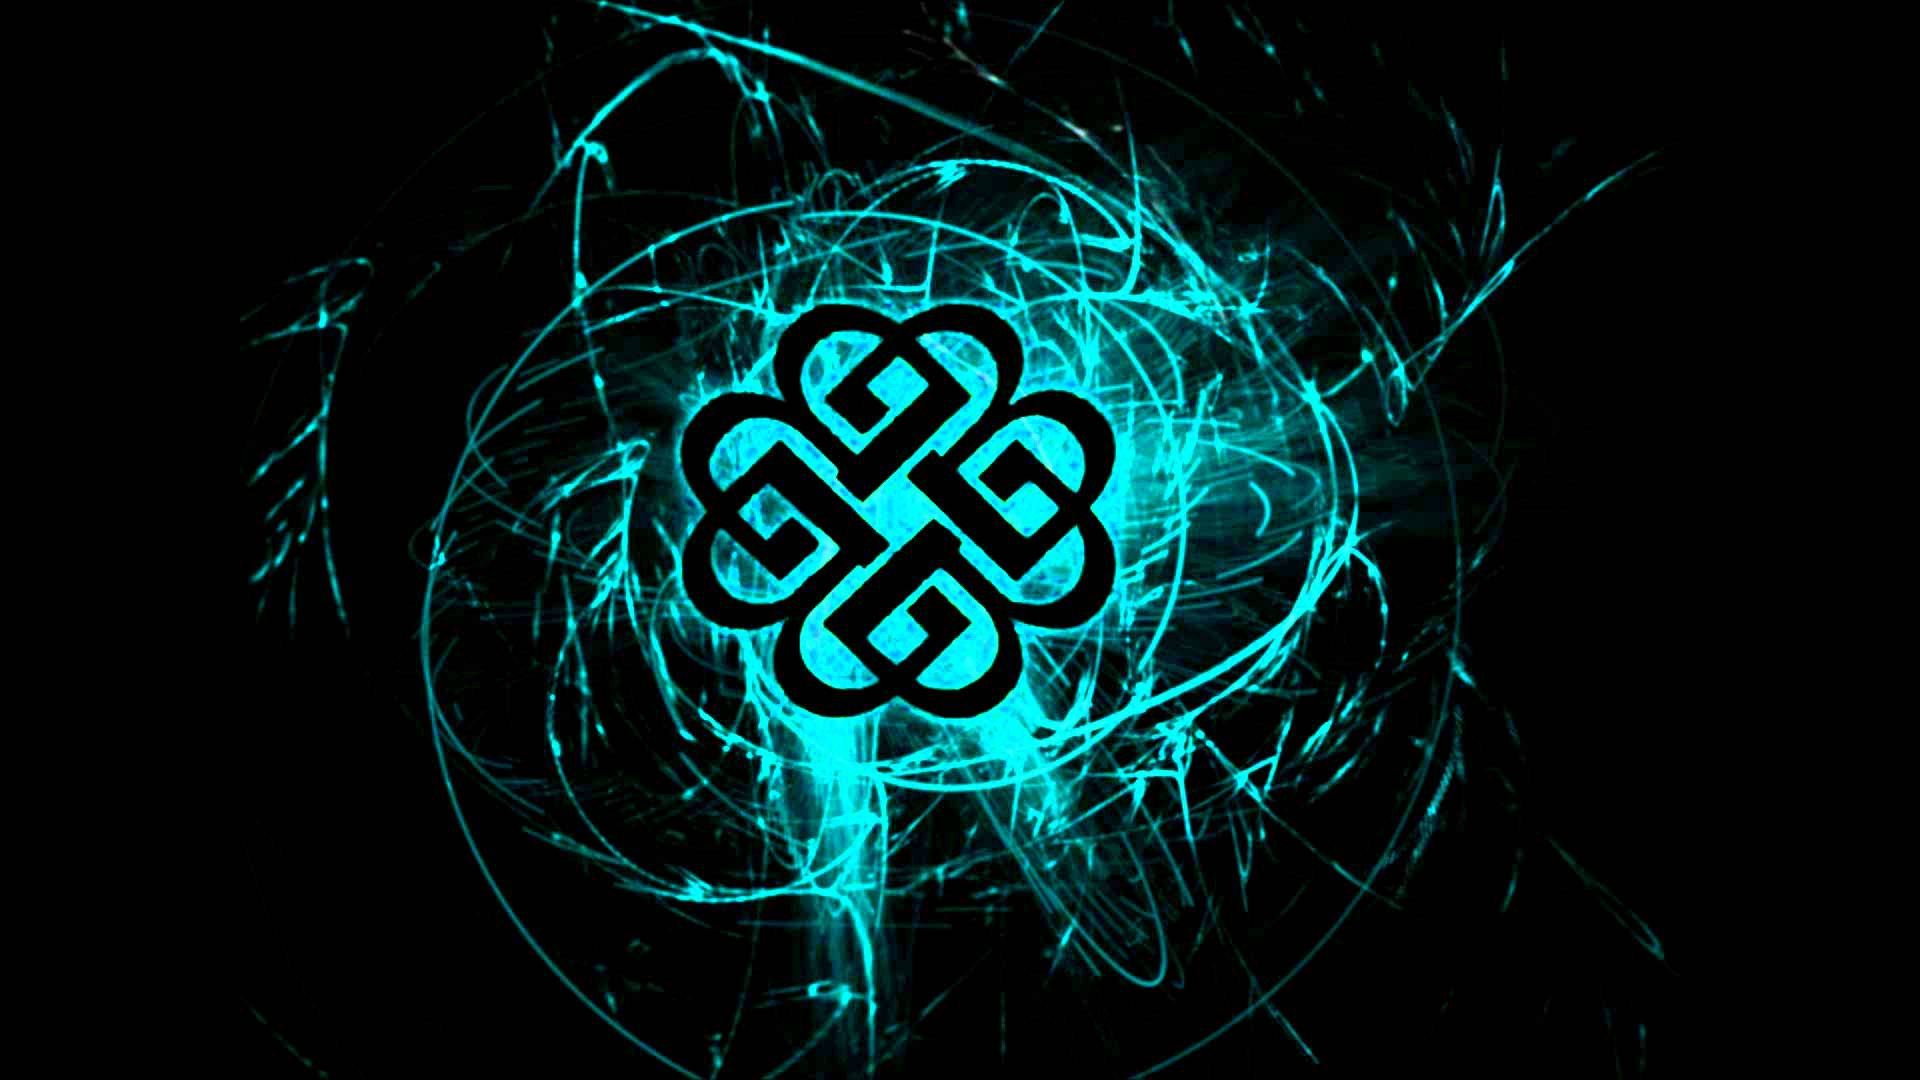 Breaking Benjamin  I Will Not Bow [HQ] 1920x1080